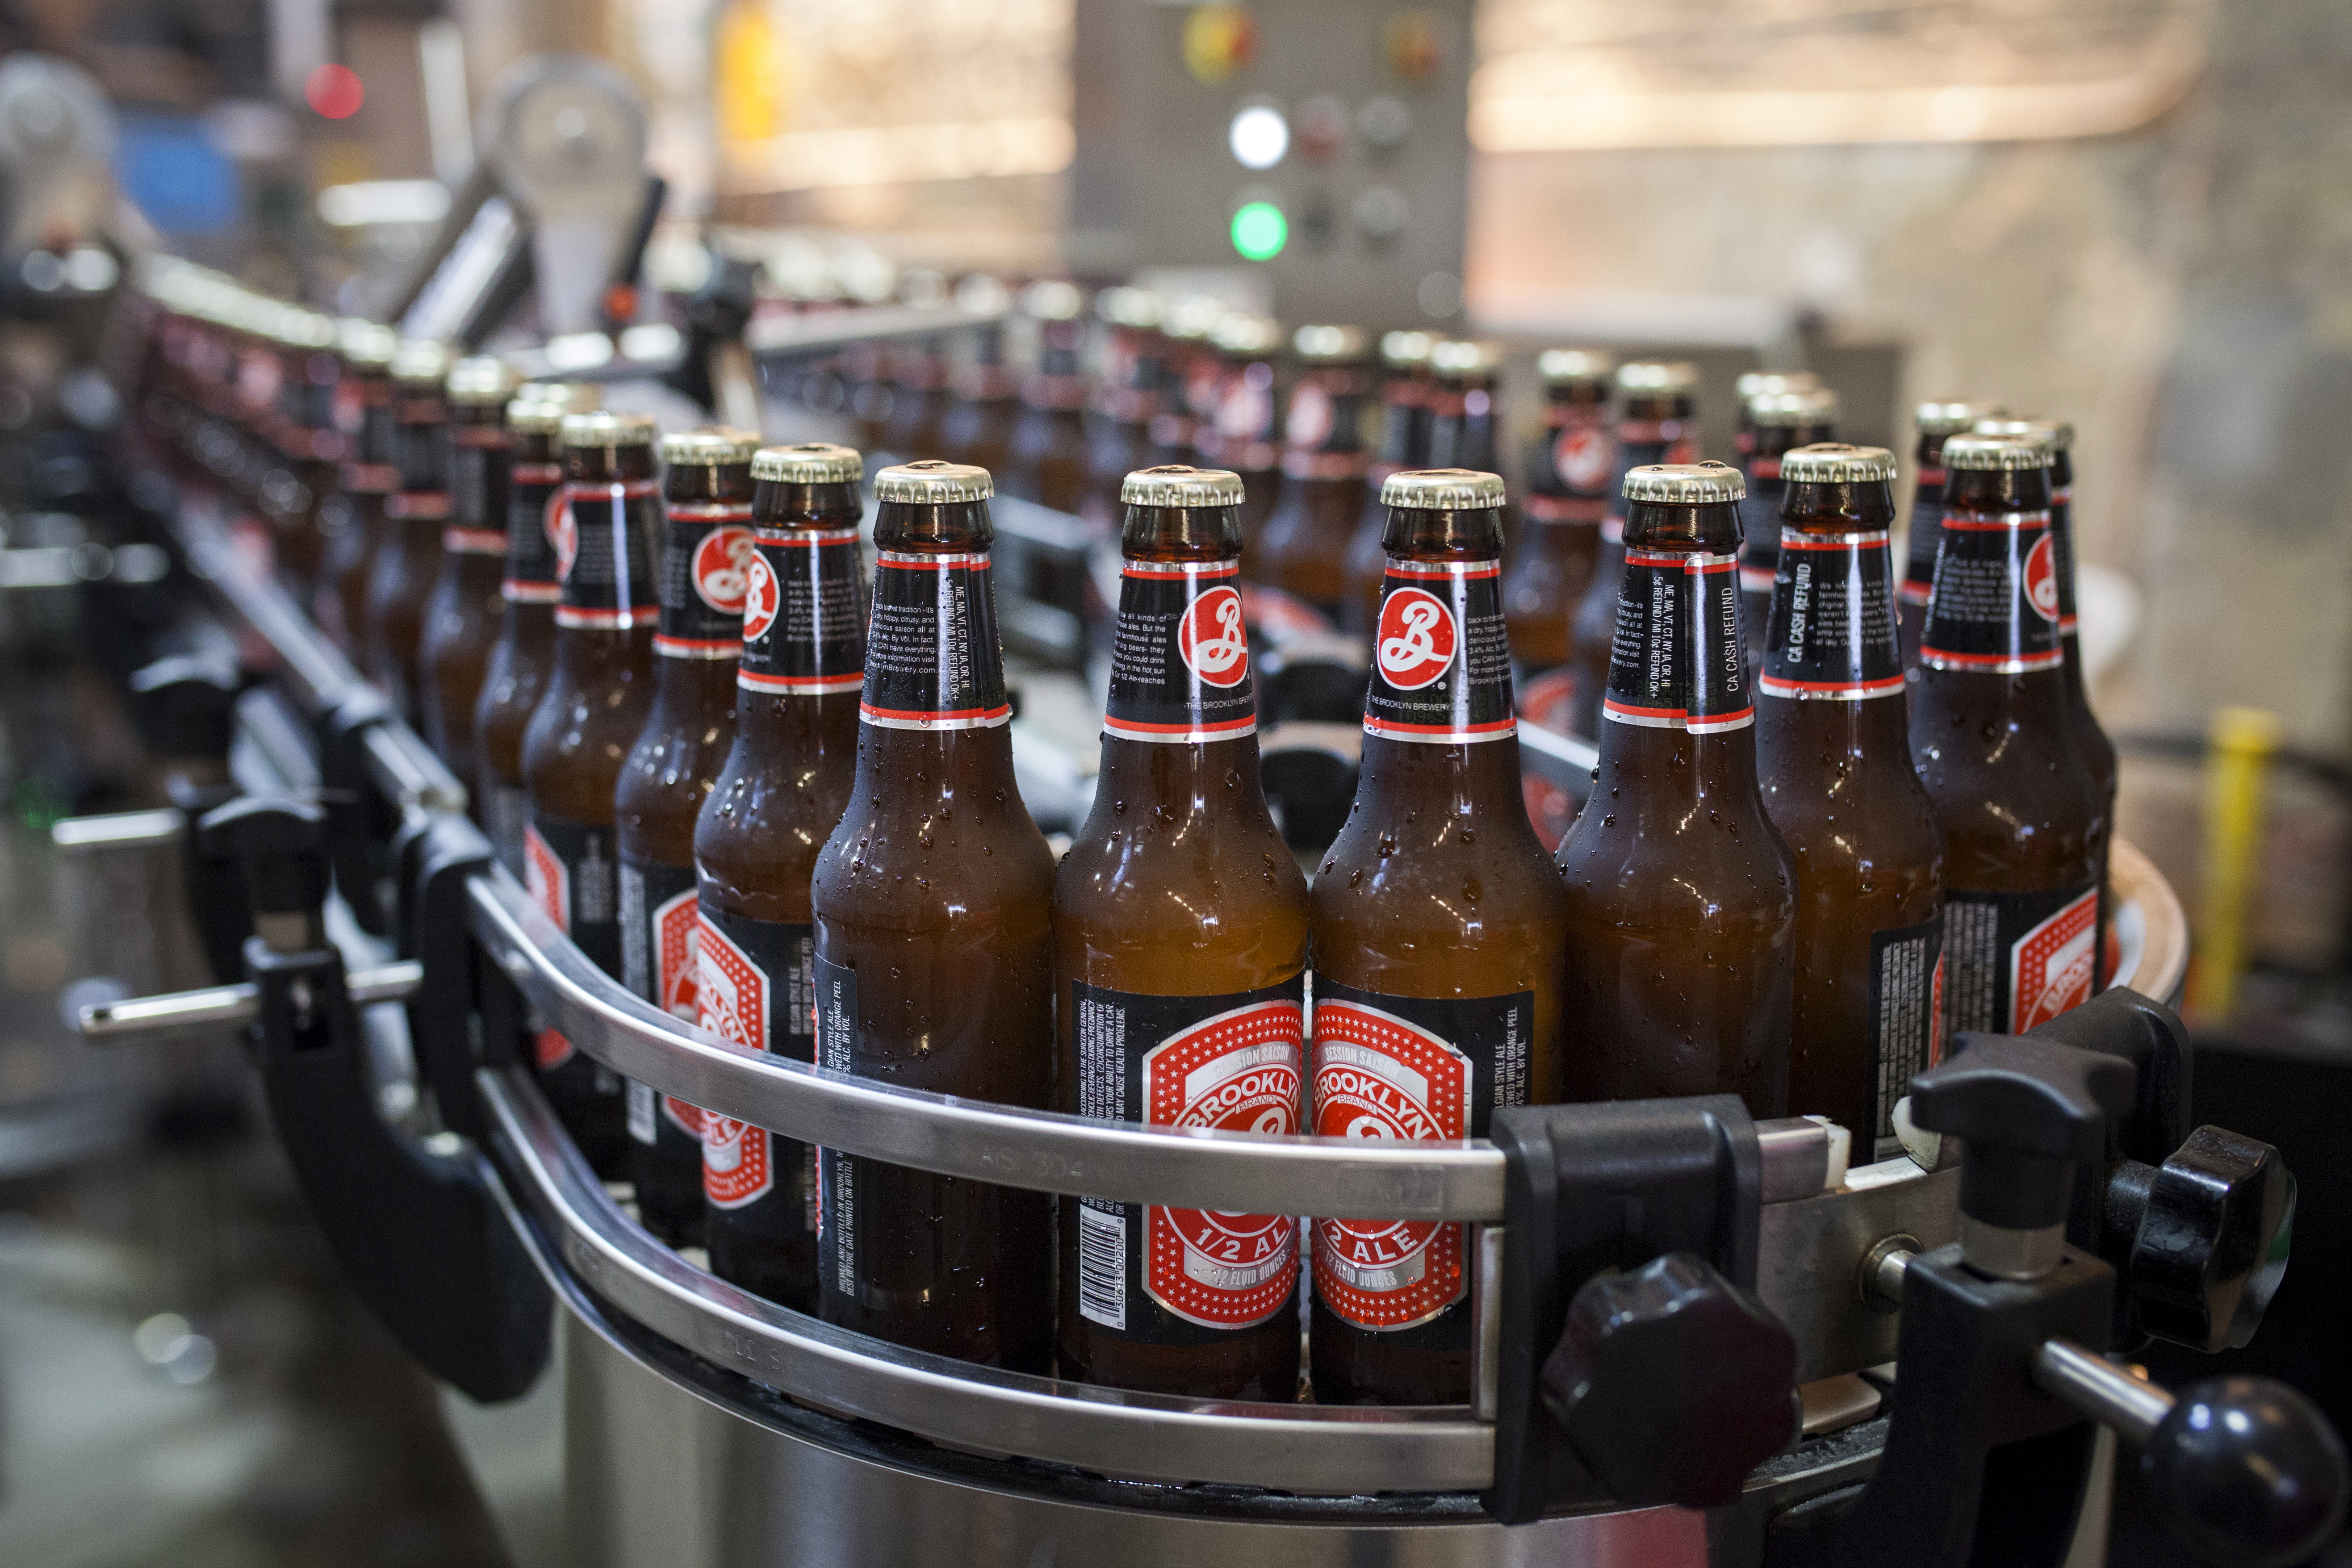 Bottled beers move down a bottling line at the Brooklyn Brewery in New York